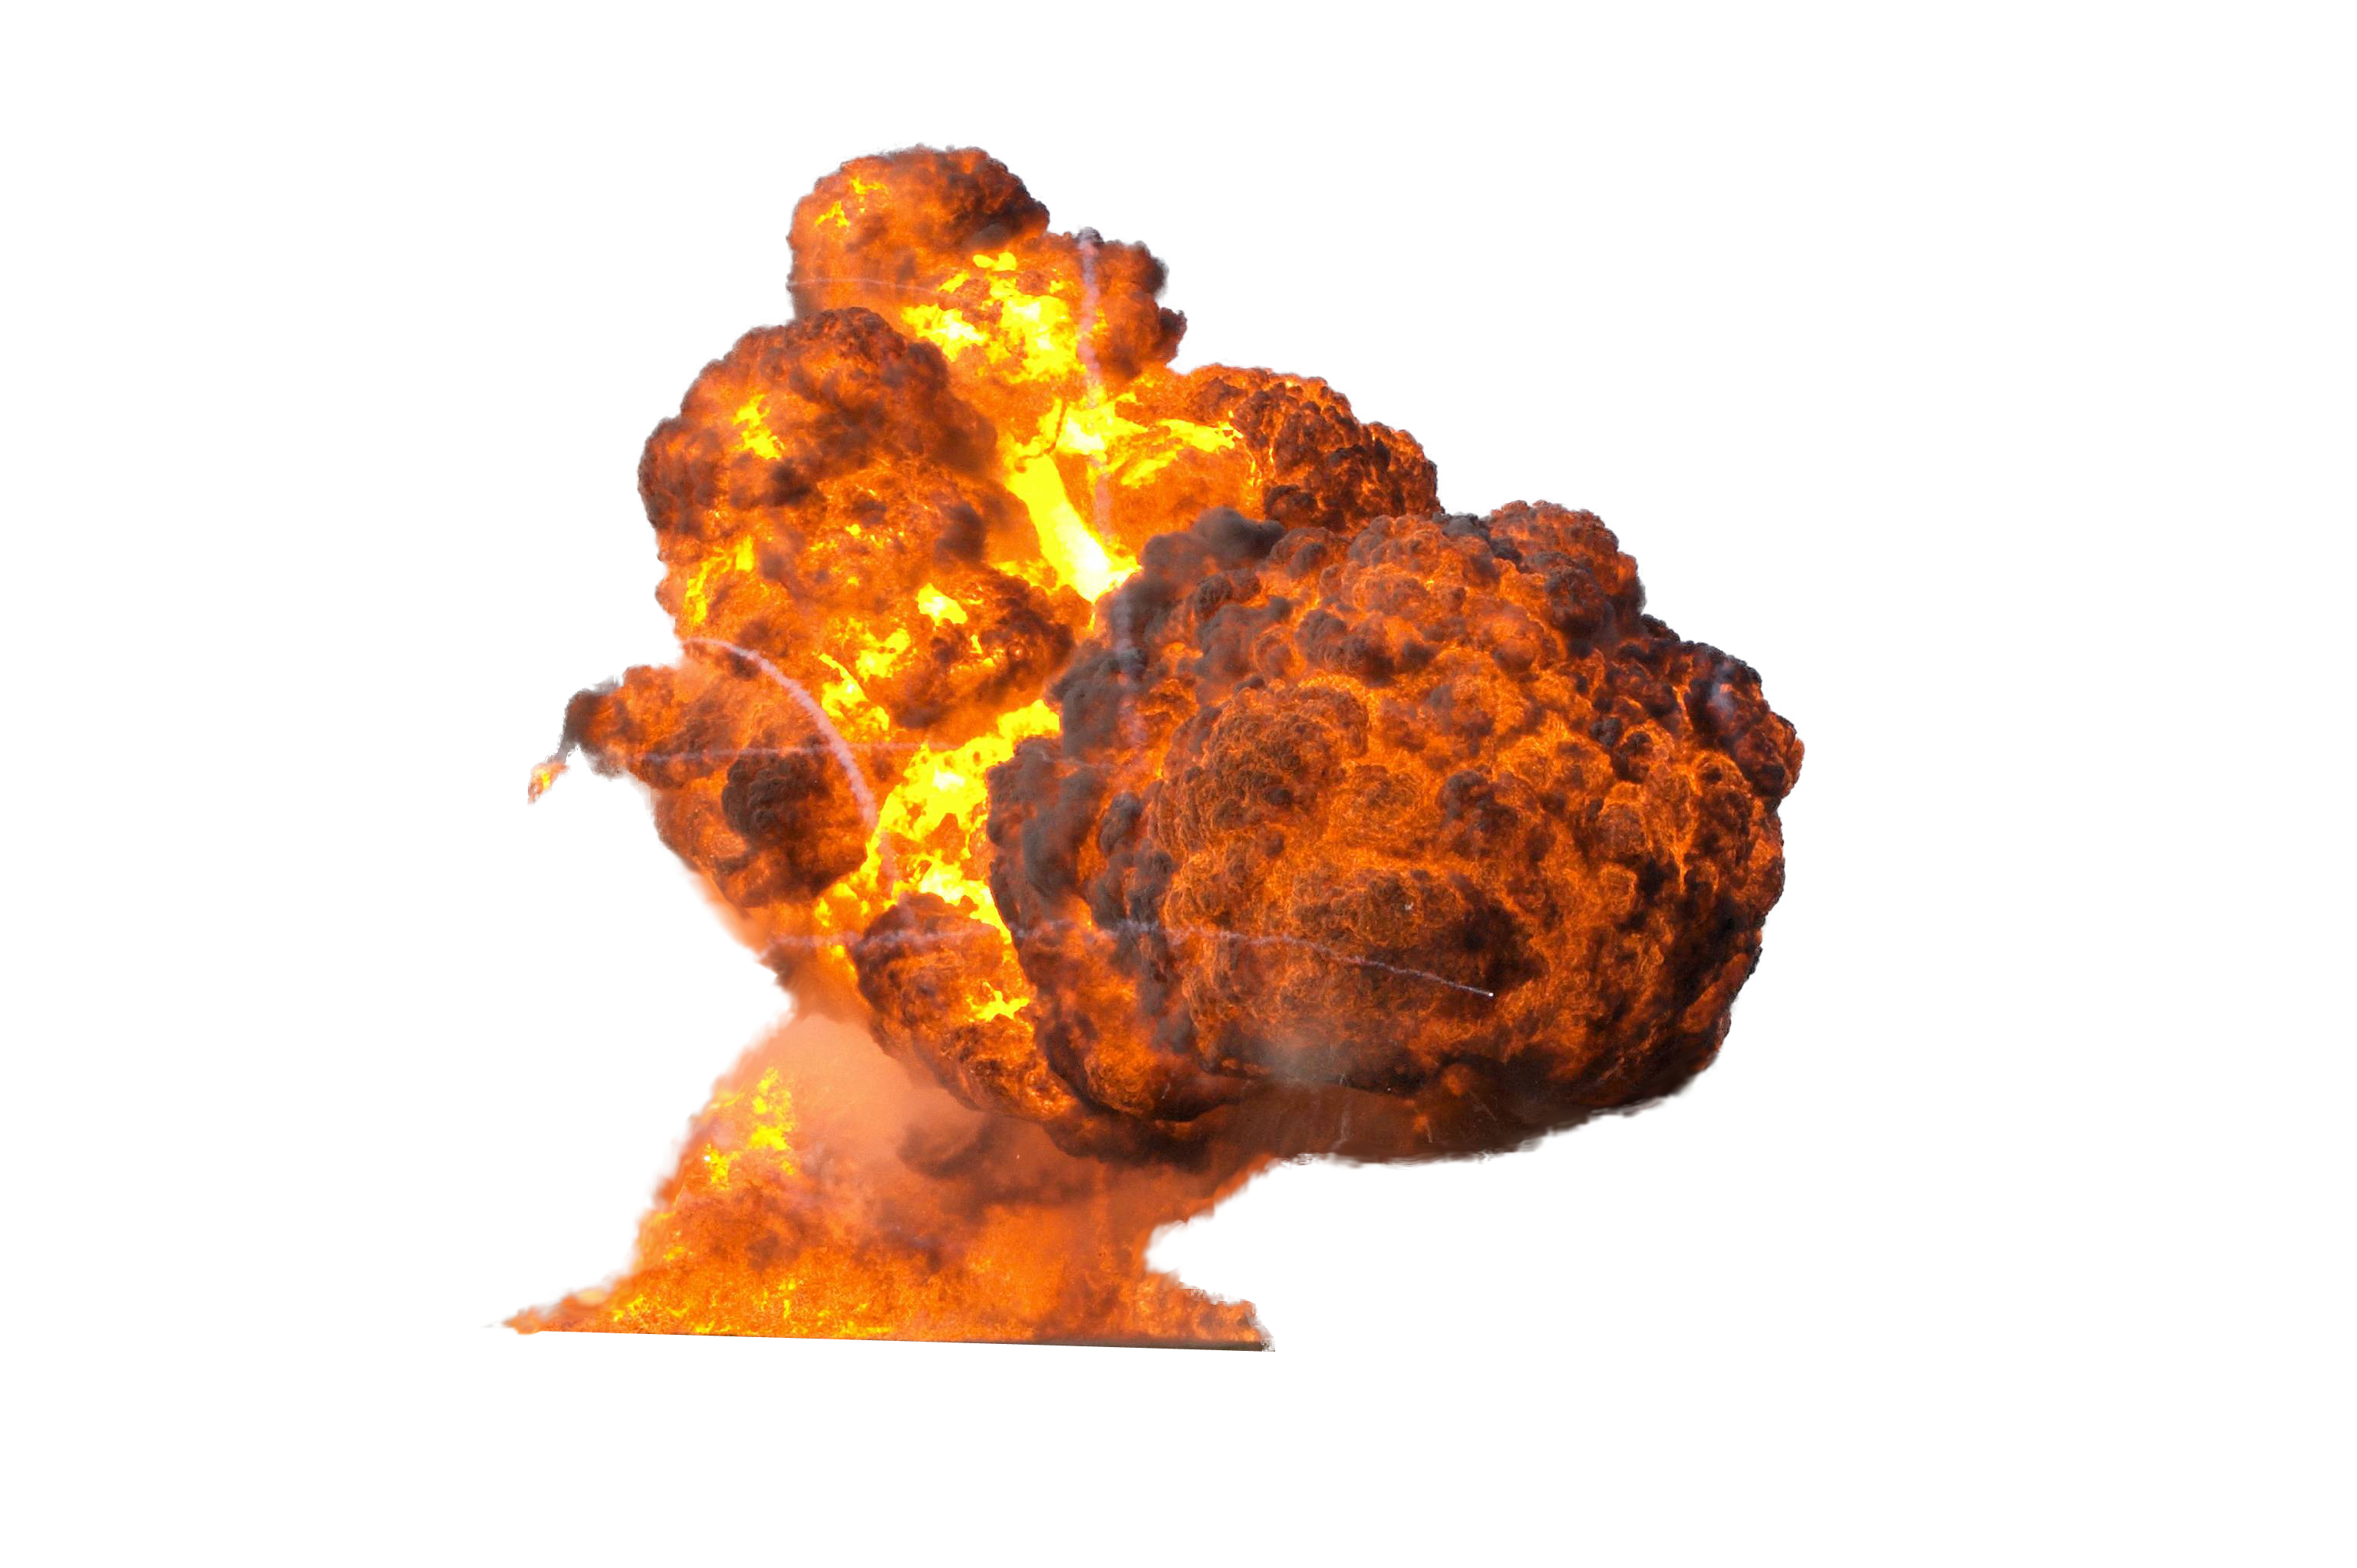 Flamming Hot Fire Explosion PNG Image